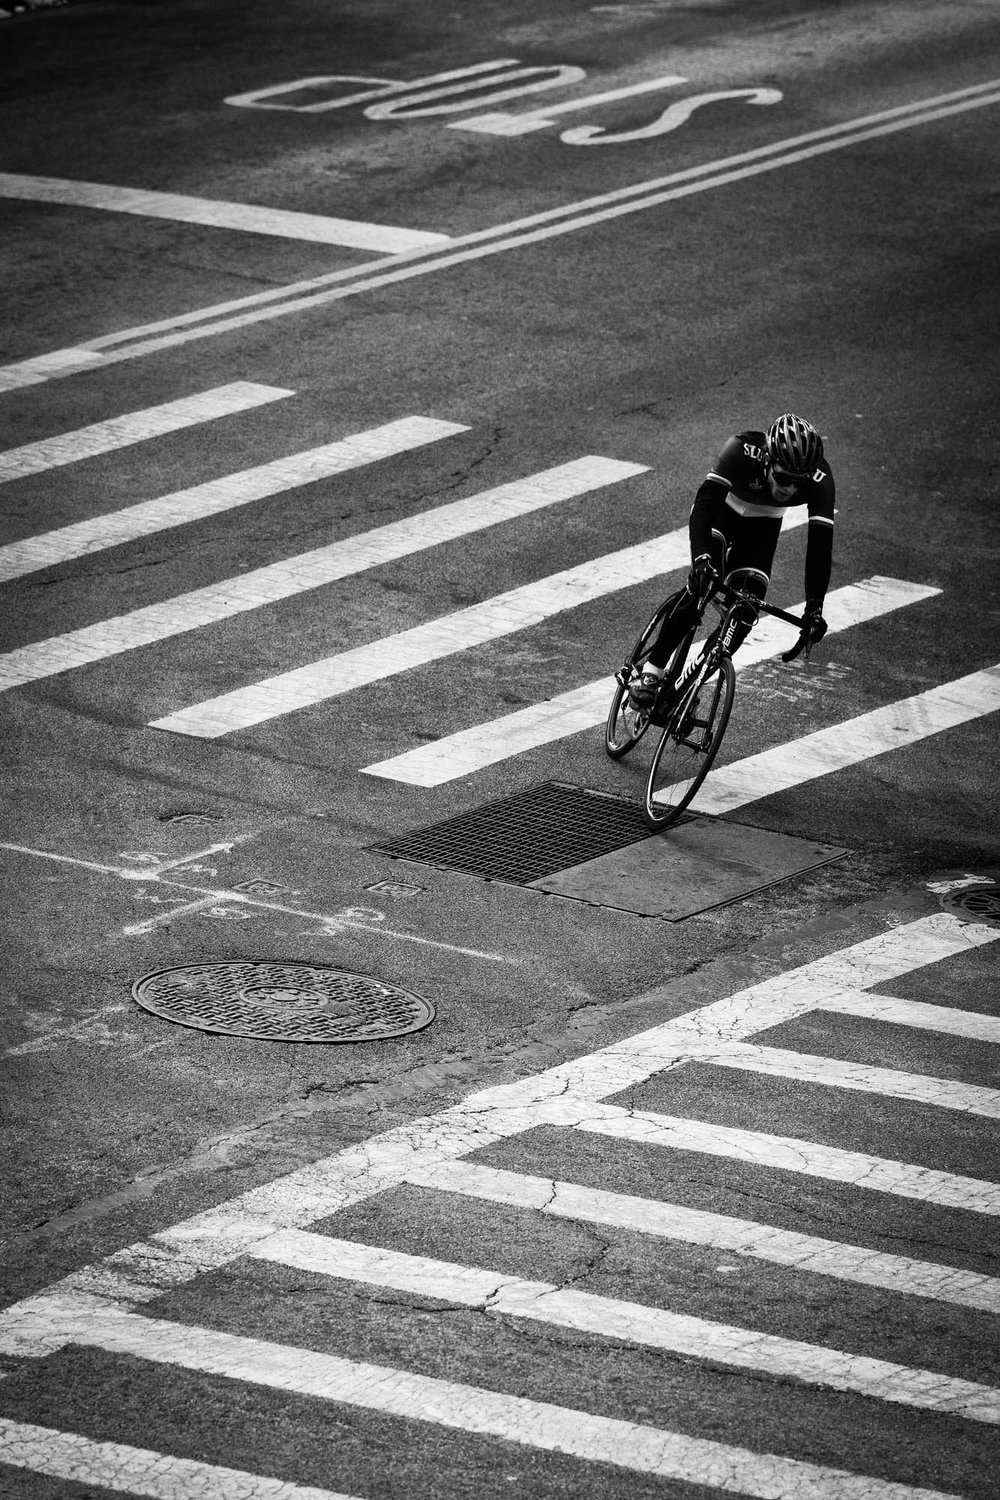 180310_Grants_Tombs_Cycling_019.jpg